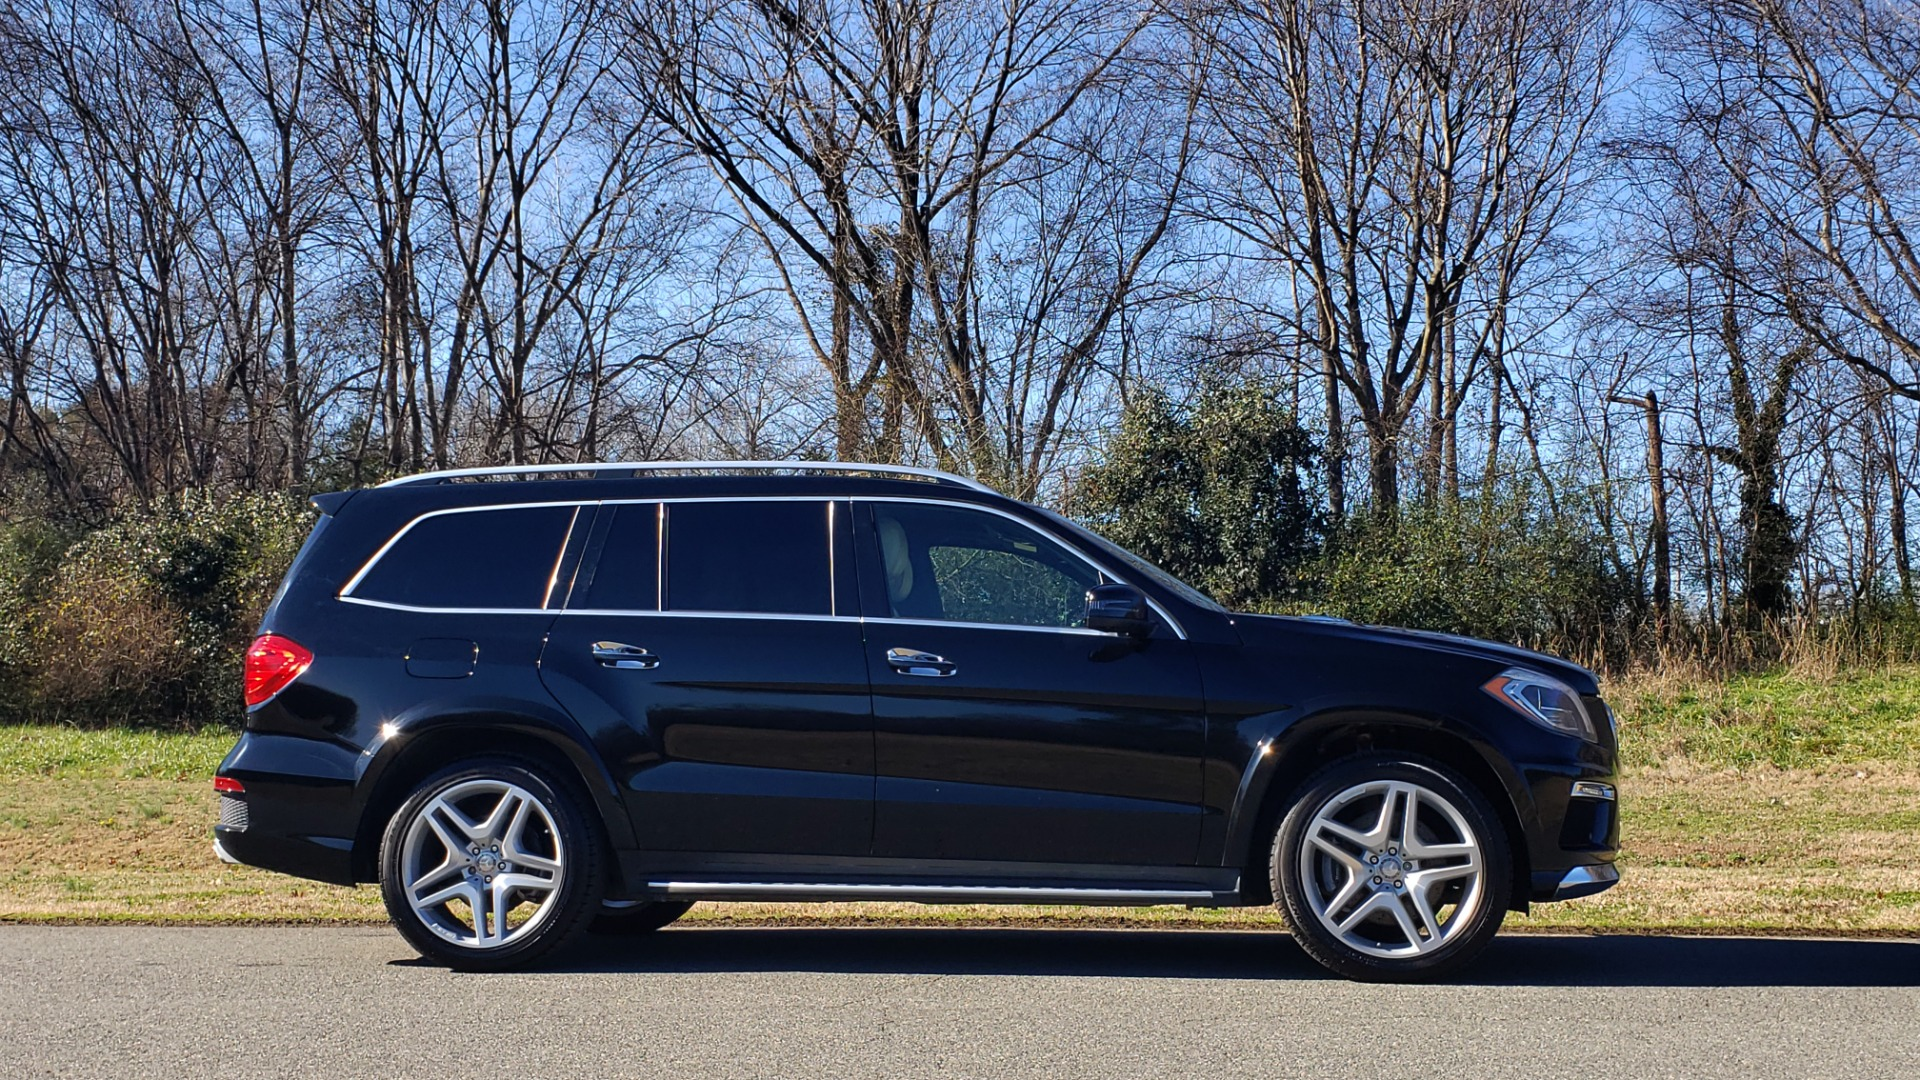 Used 2015 Mercedes-Benz GL-Class GL 550 4MATIC / DRVR ASST / PANO-ROOF / DESIGNO / REARVIEW for sale Sold at Formula Imports in Charlotte NC 28227 5